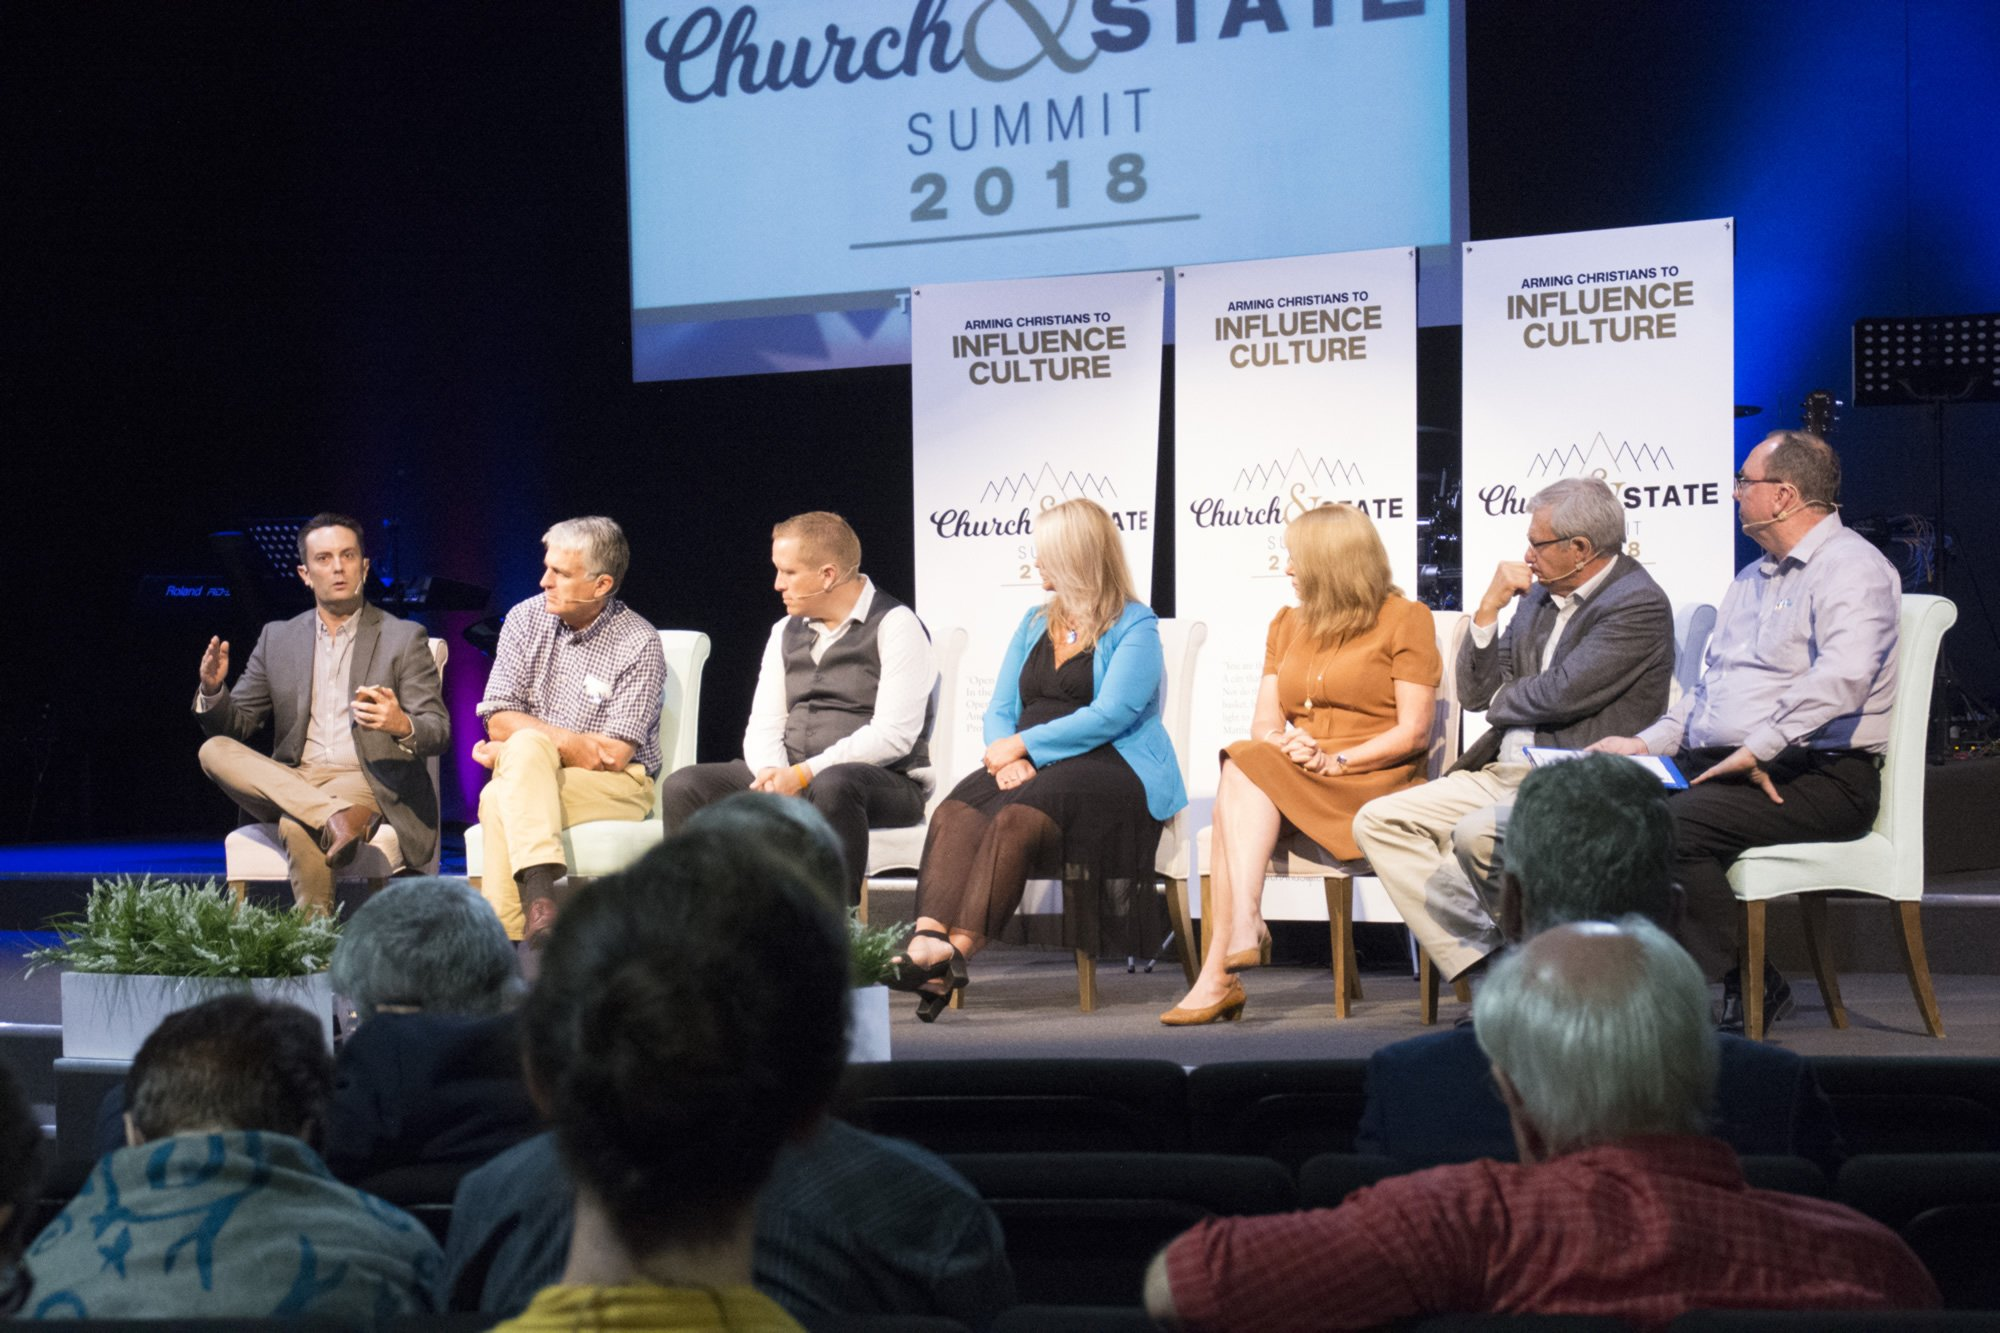 Church And State - Arming Christians To Influence Culture